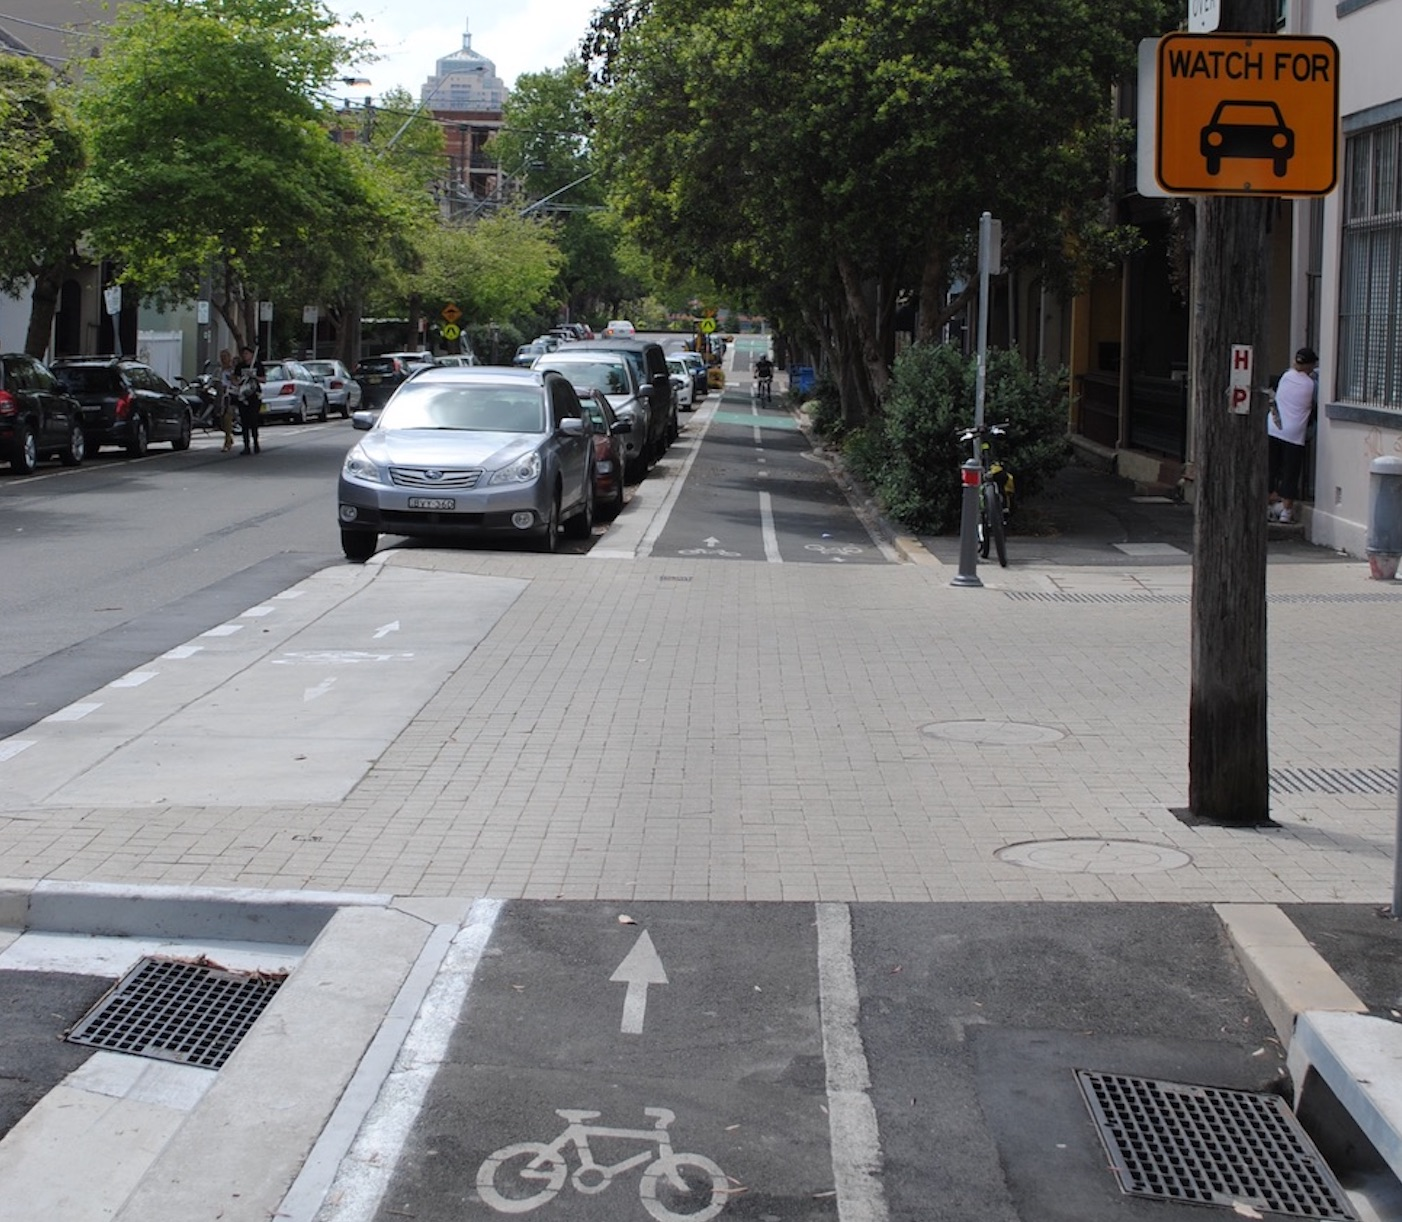 Calling for an end to unhealthy transport policies that put cars first